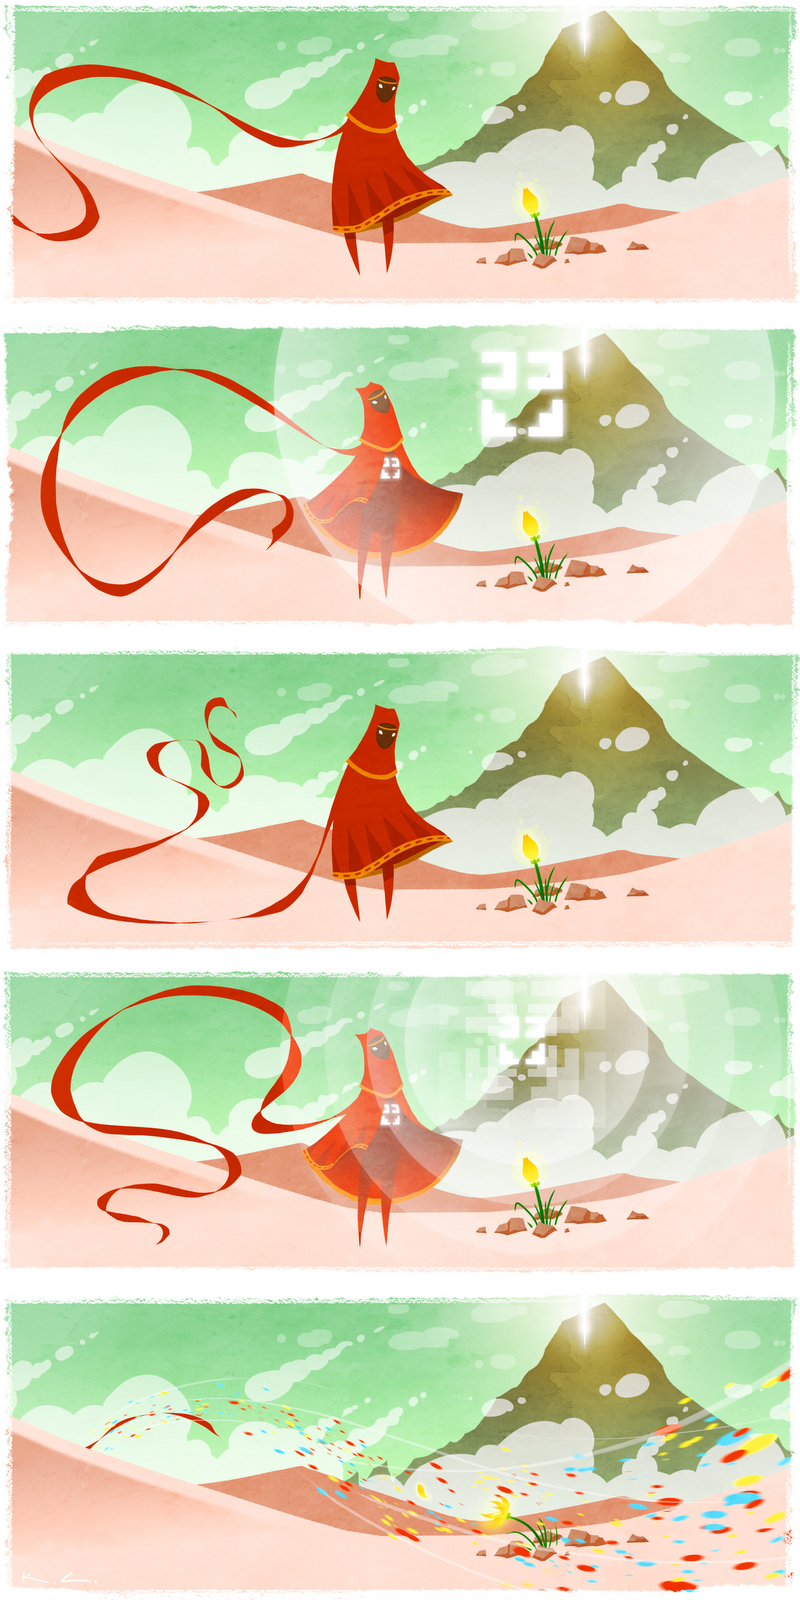 Journey & Flower comic fan art